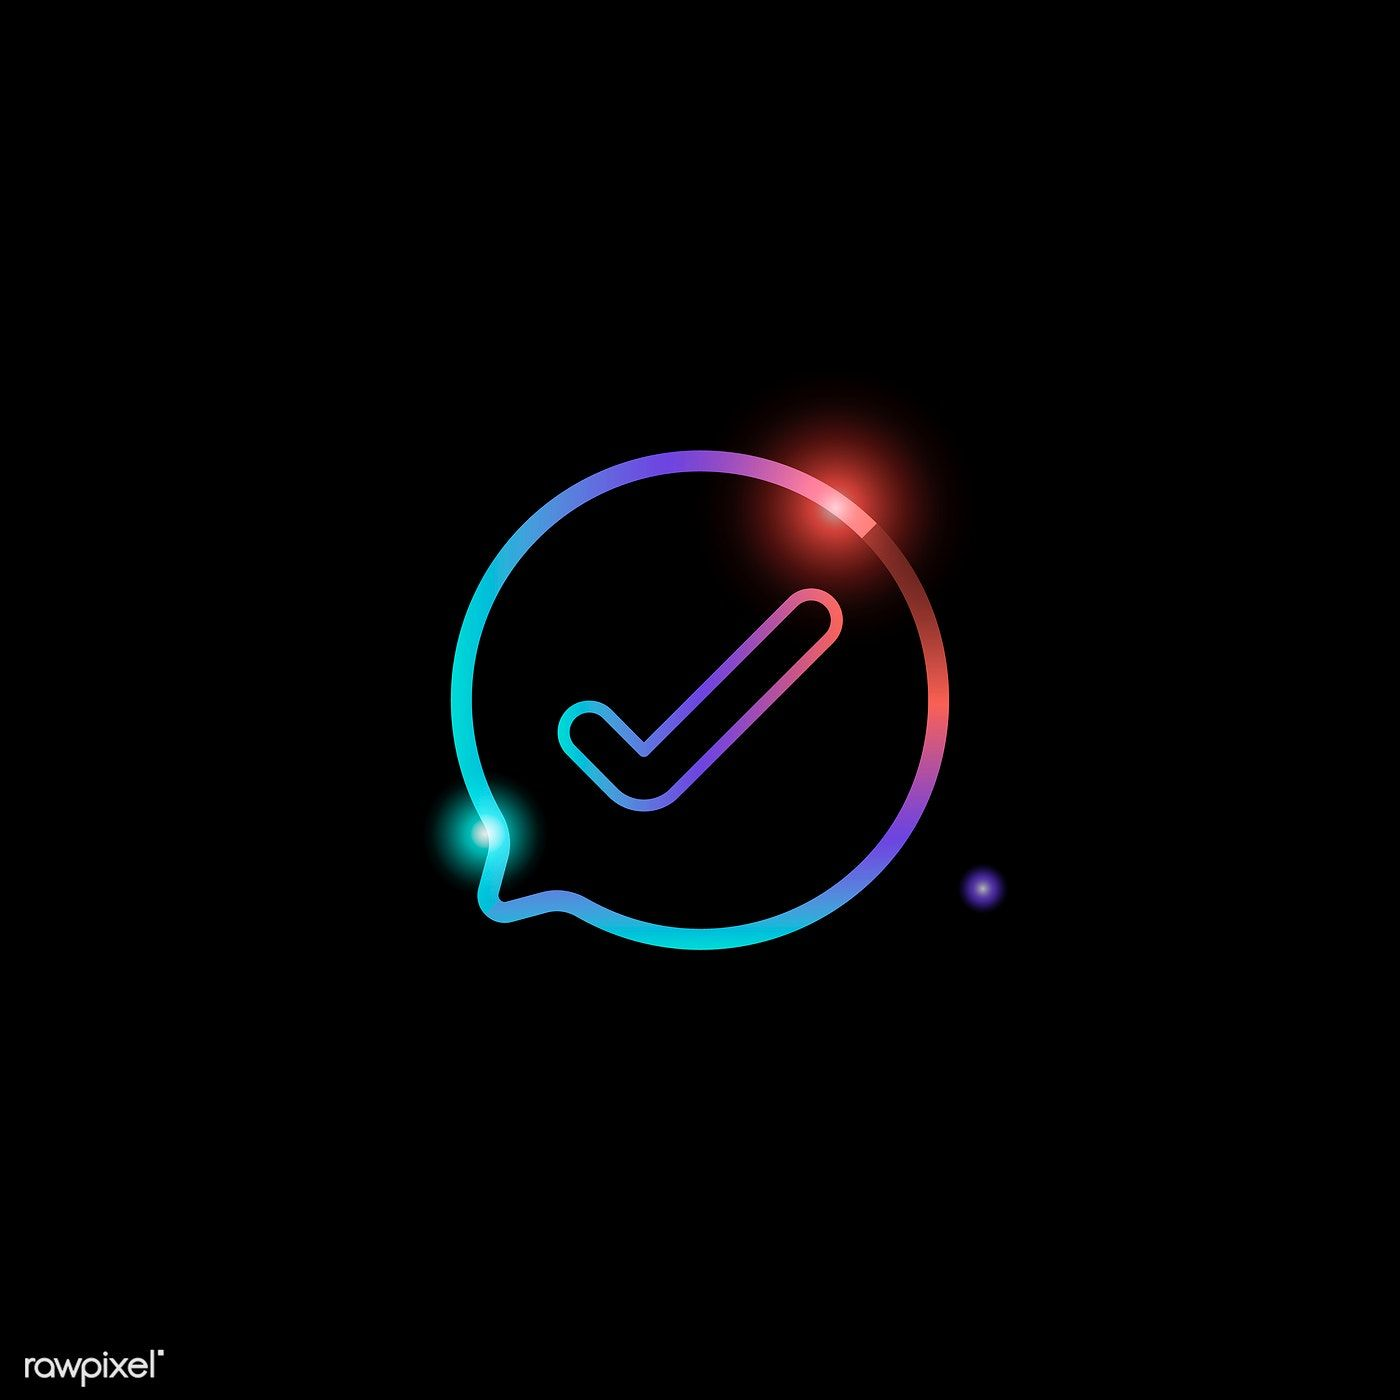 Check Mark Social Media Icon Vector Premium Image By Rawpixel Com Aew Social Media Icons Vector Social Media Icons Media Icon